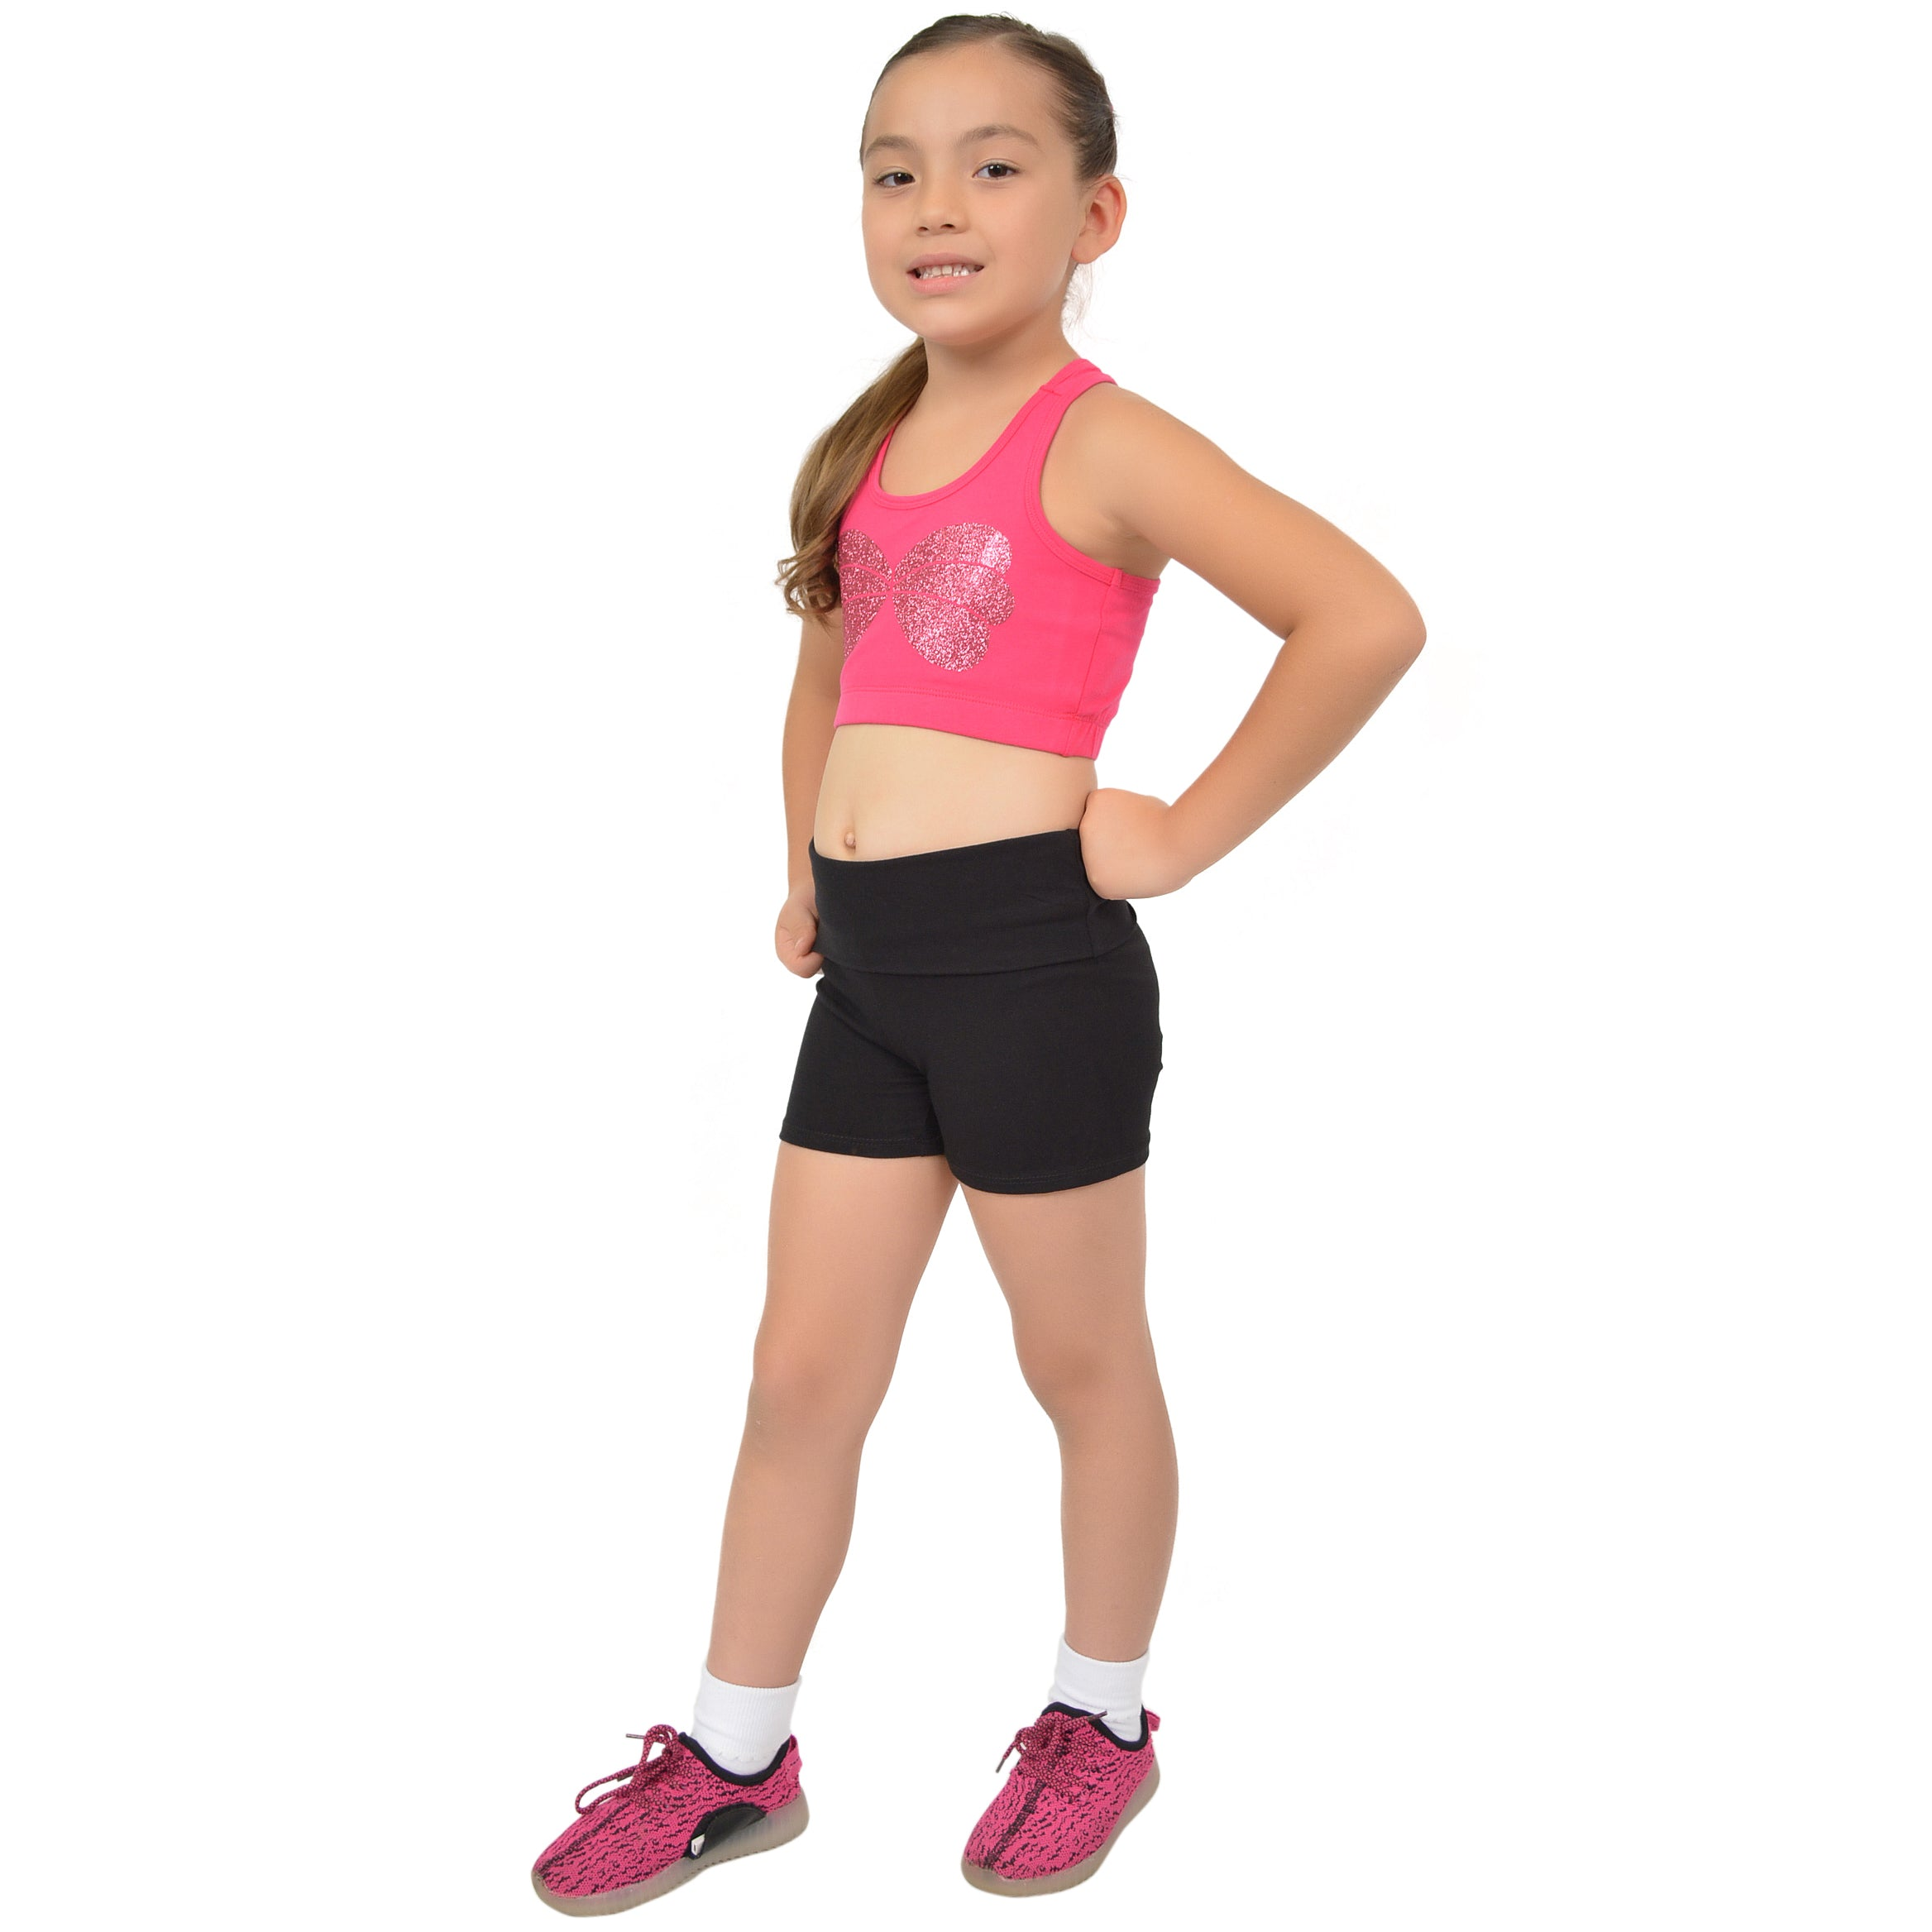 Girl's Cotton ARIEL MERMAID Sparkly Sports Bra